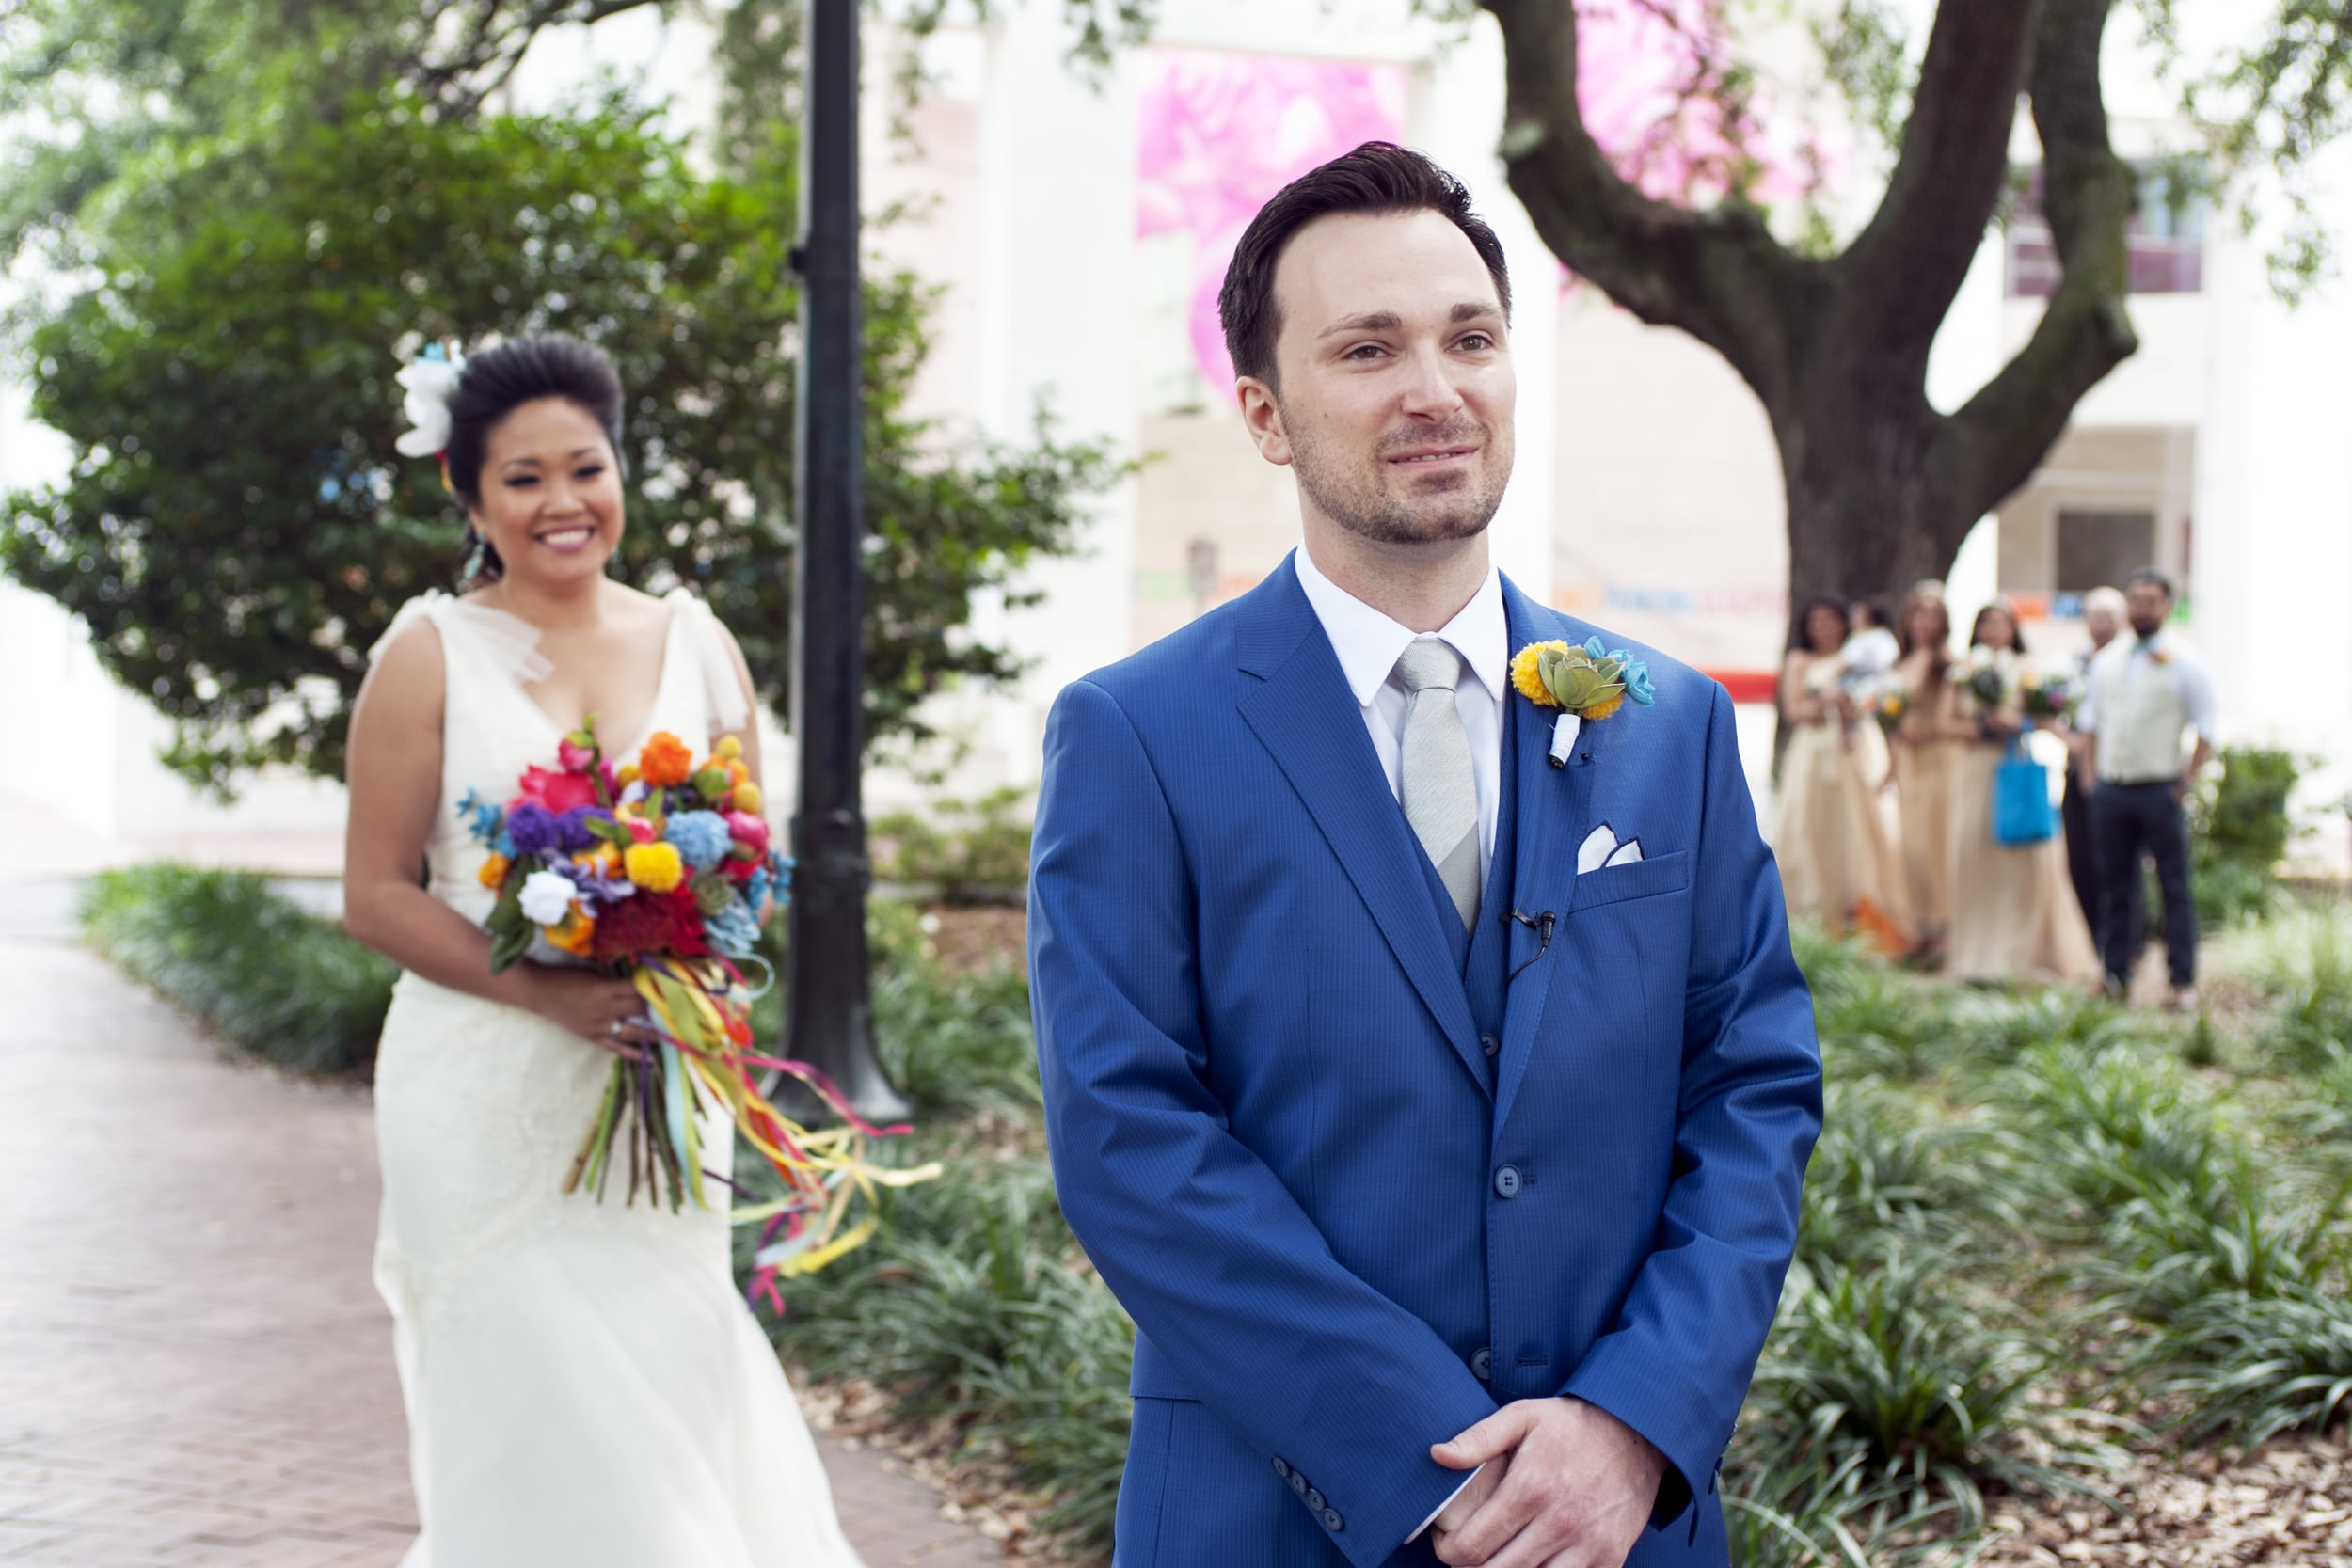 jeff-and-mollie-take-pictures-ivory-and-beau-wedding-planning-ivory-and-beau-bridal-boutique-old-fort-jackson-wedding-colorful-wedding-savannah-wedding-planner-savannah-weddings-michelle-and-johnny-wedding-savannah-weddings-indie-wedding-8.jpg